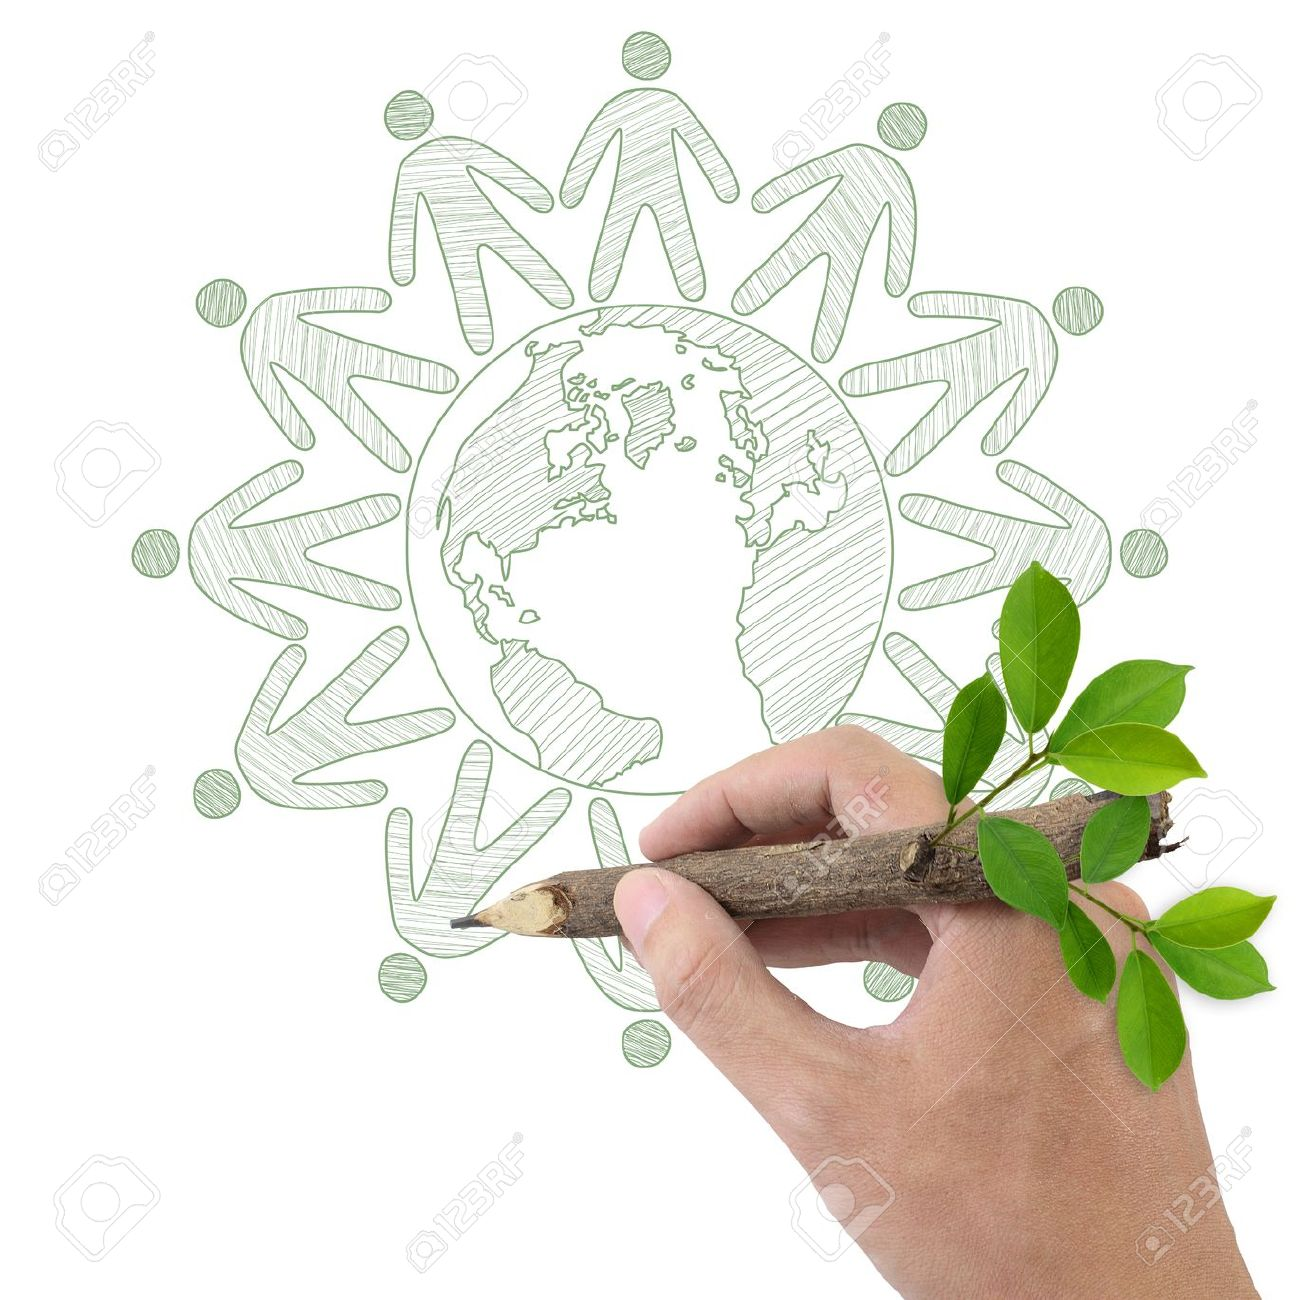 Male hand drawing people joined hands around the Earth Stock Photo - 13927019